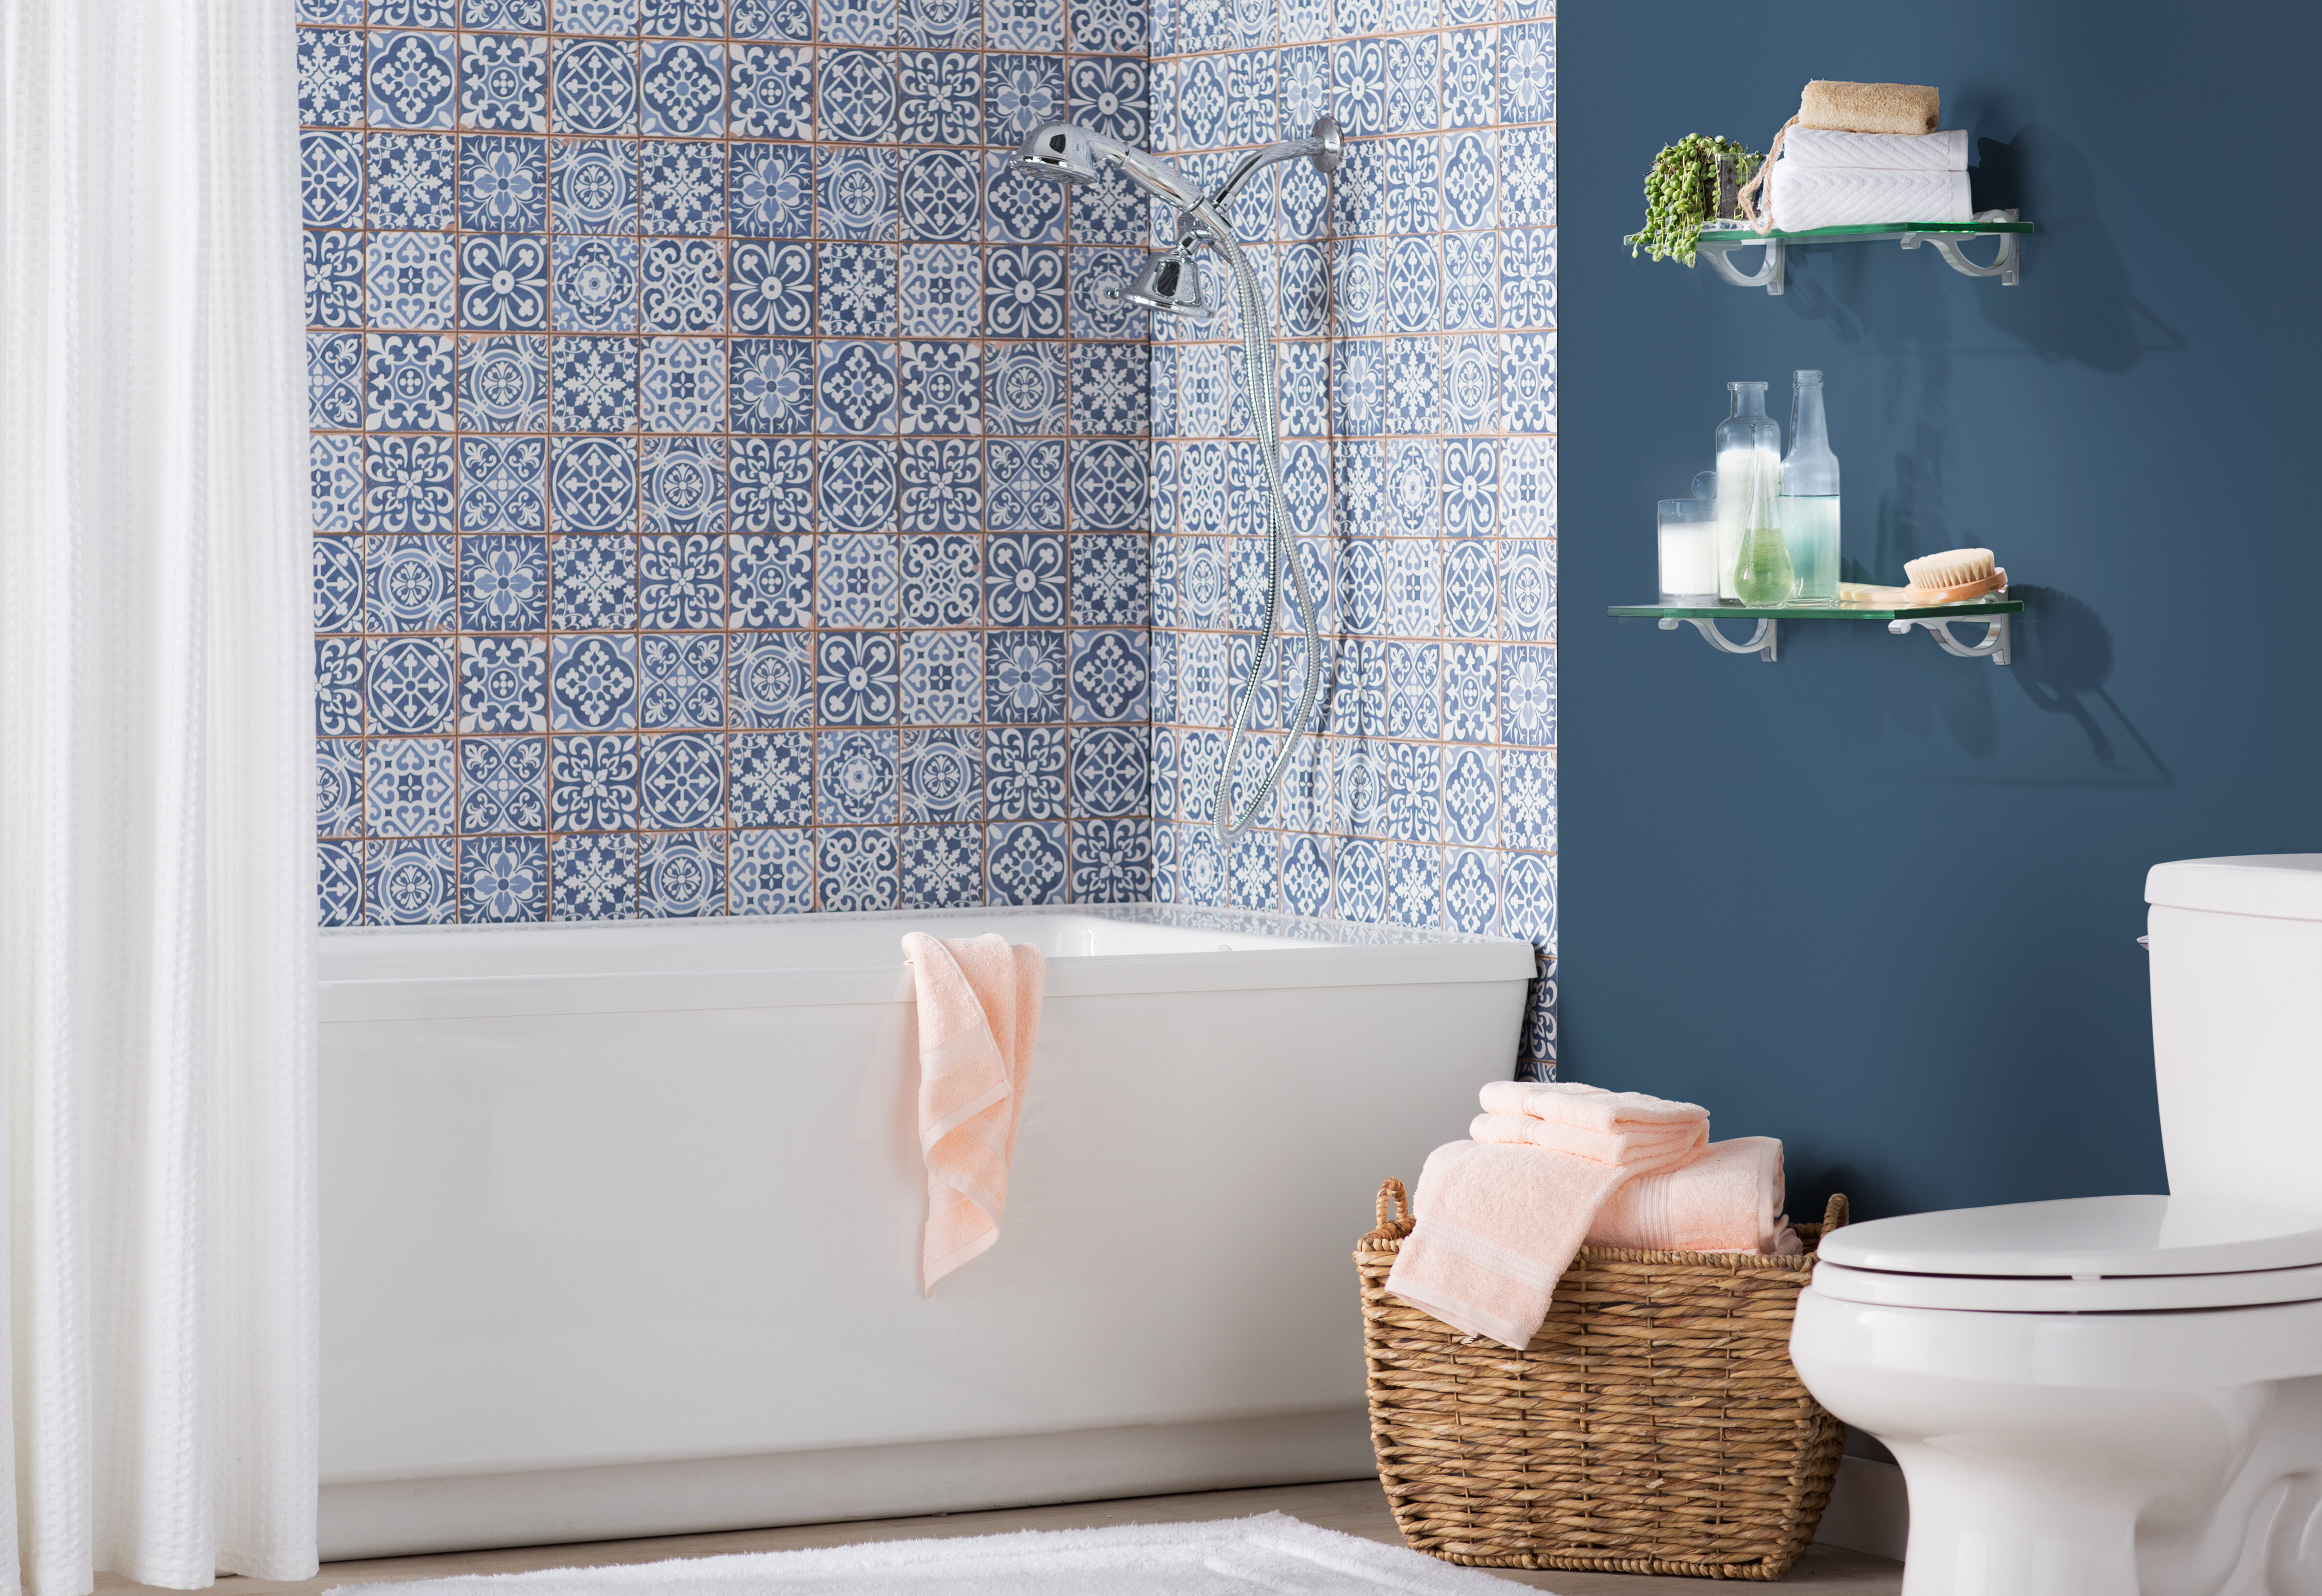 11 Dazzling Shower Tile Ideas For Your